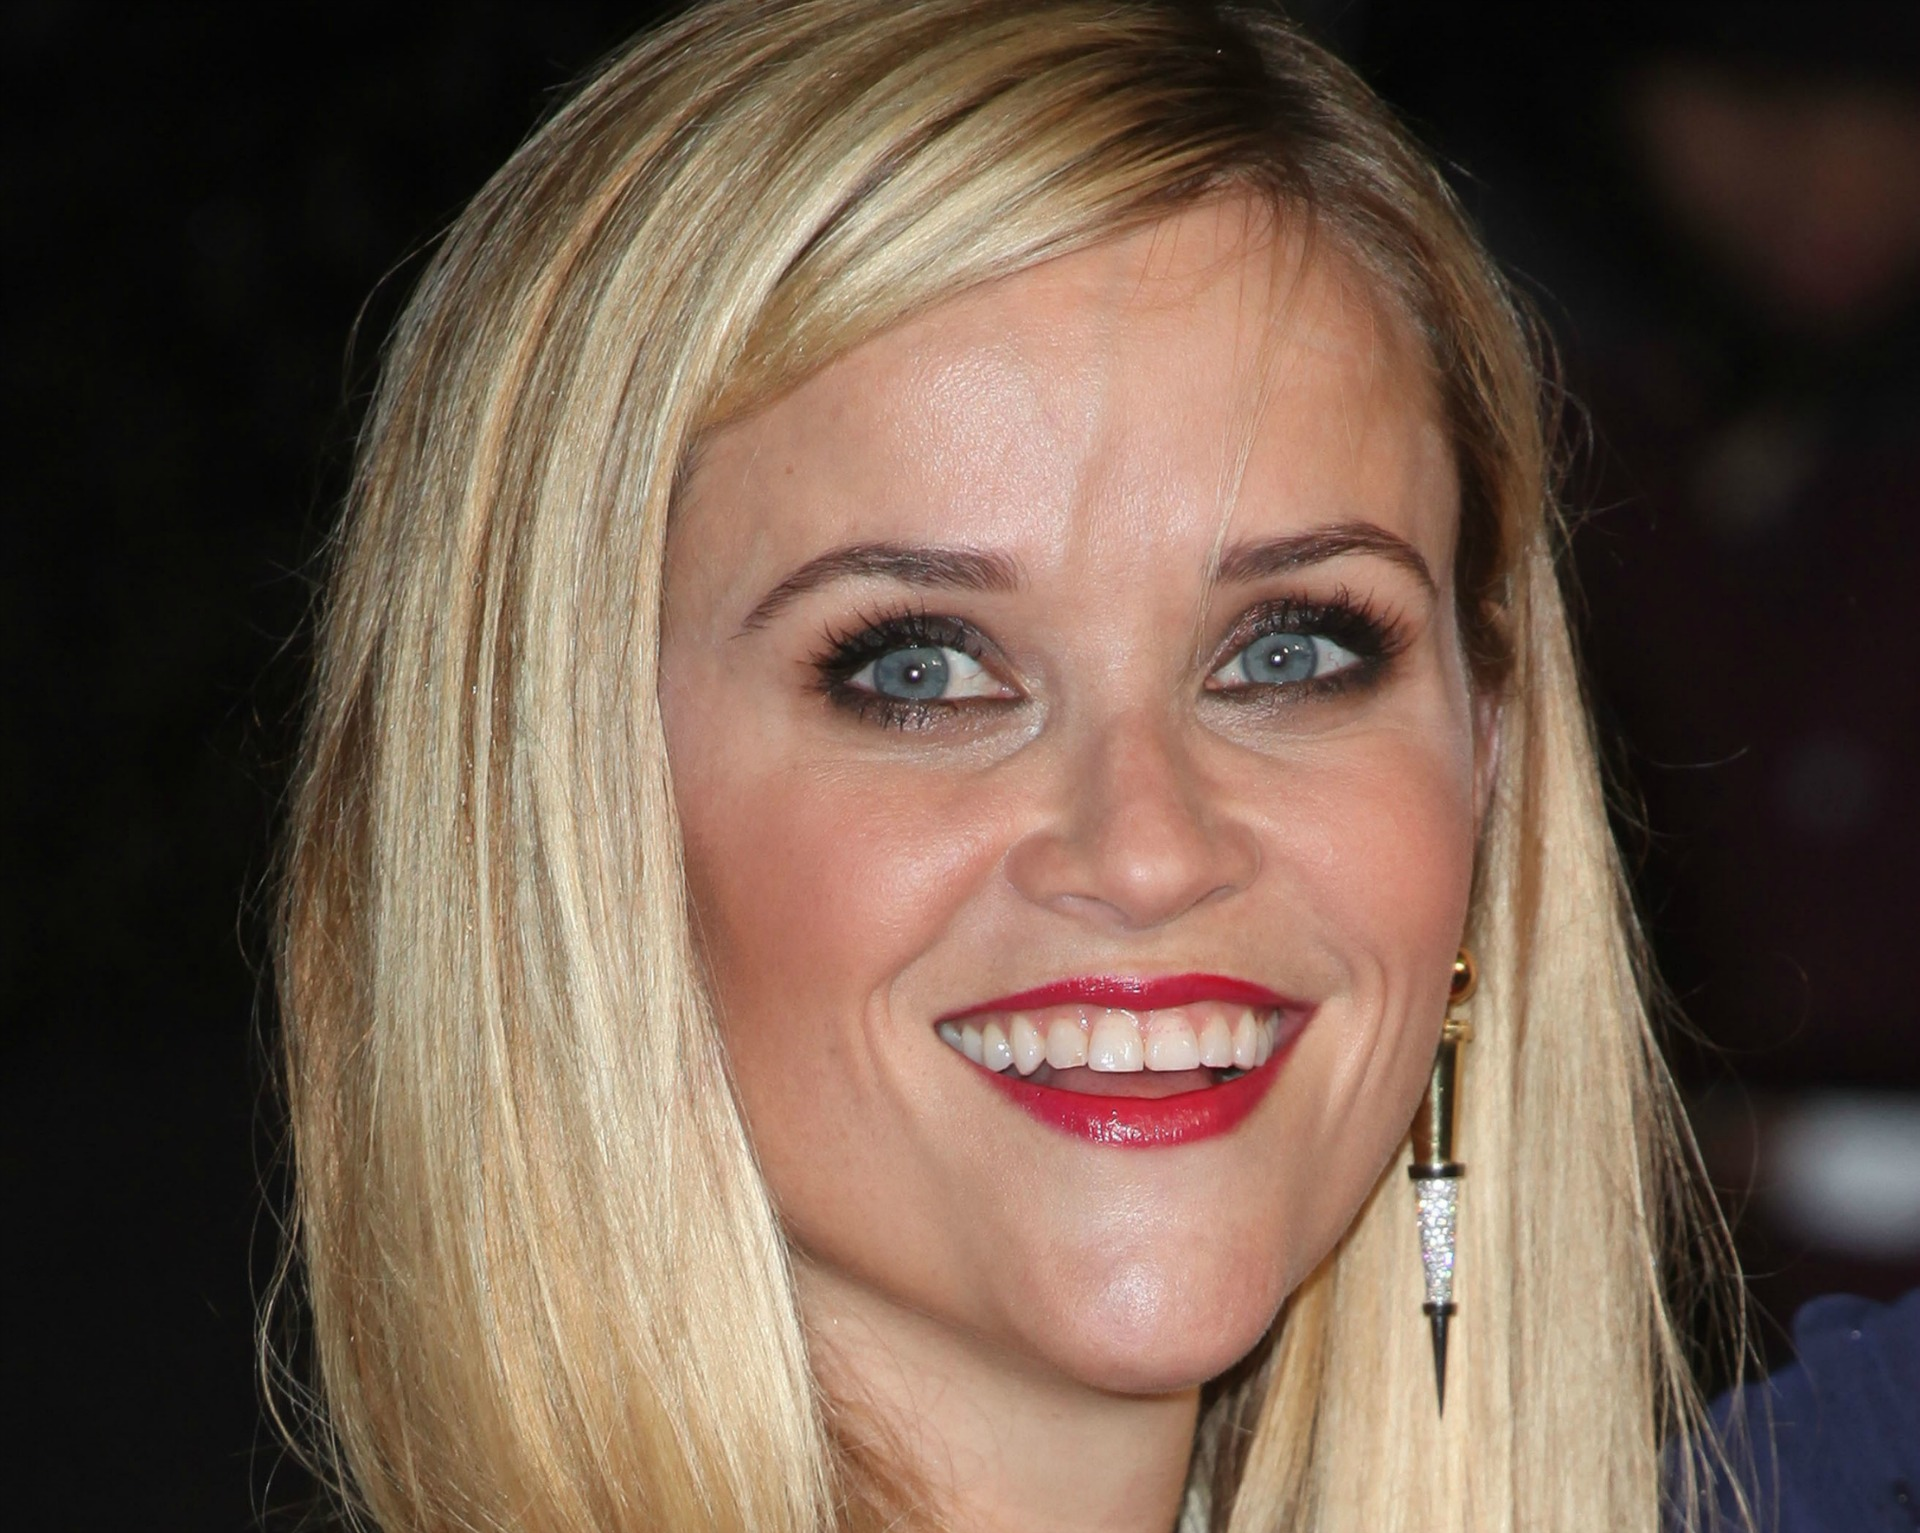 Reese Witherspoon in red lipstick